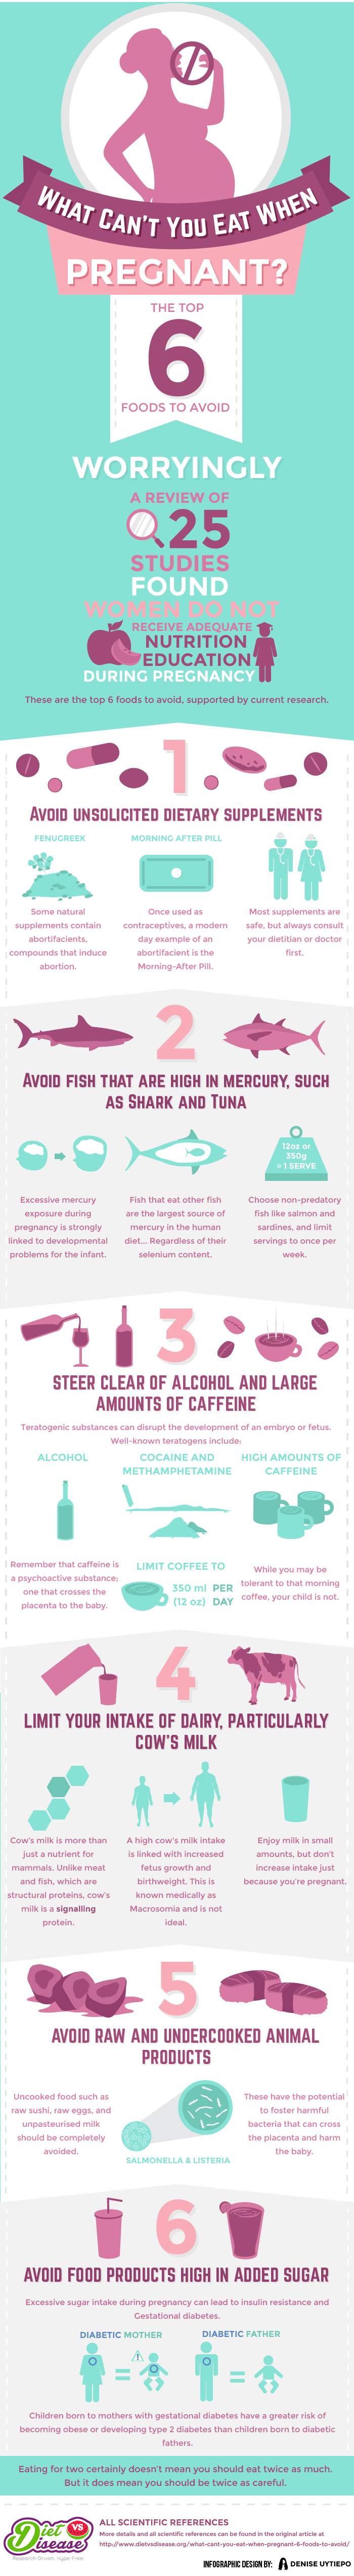 Planning Your Pregnancy Diet: Top 6 Foods to Avoid - Infographic